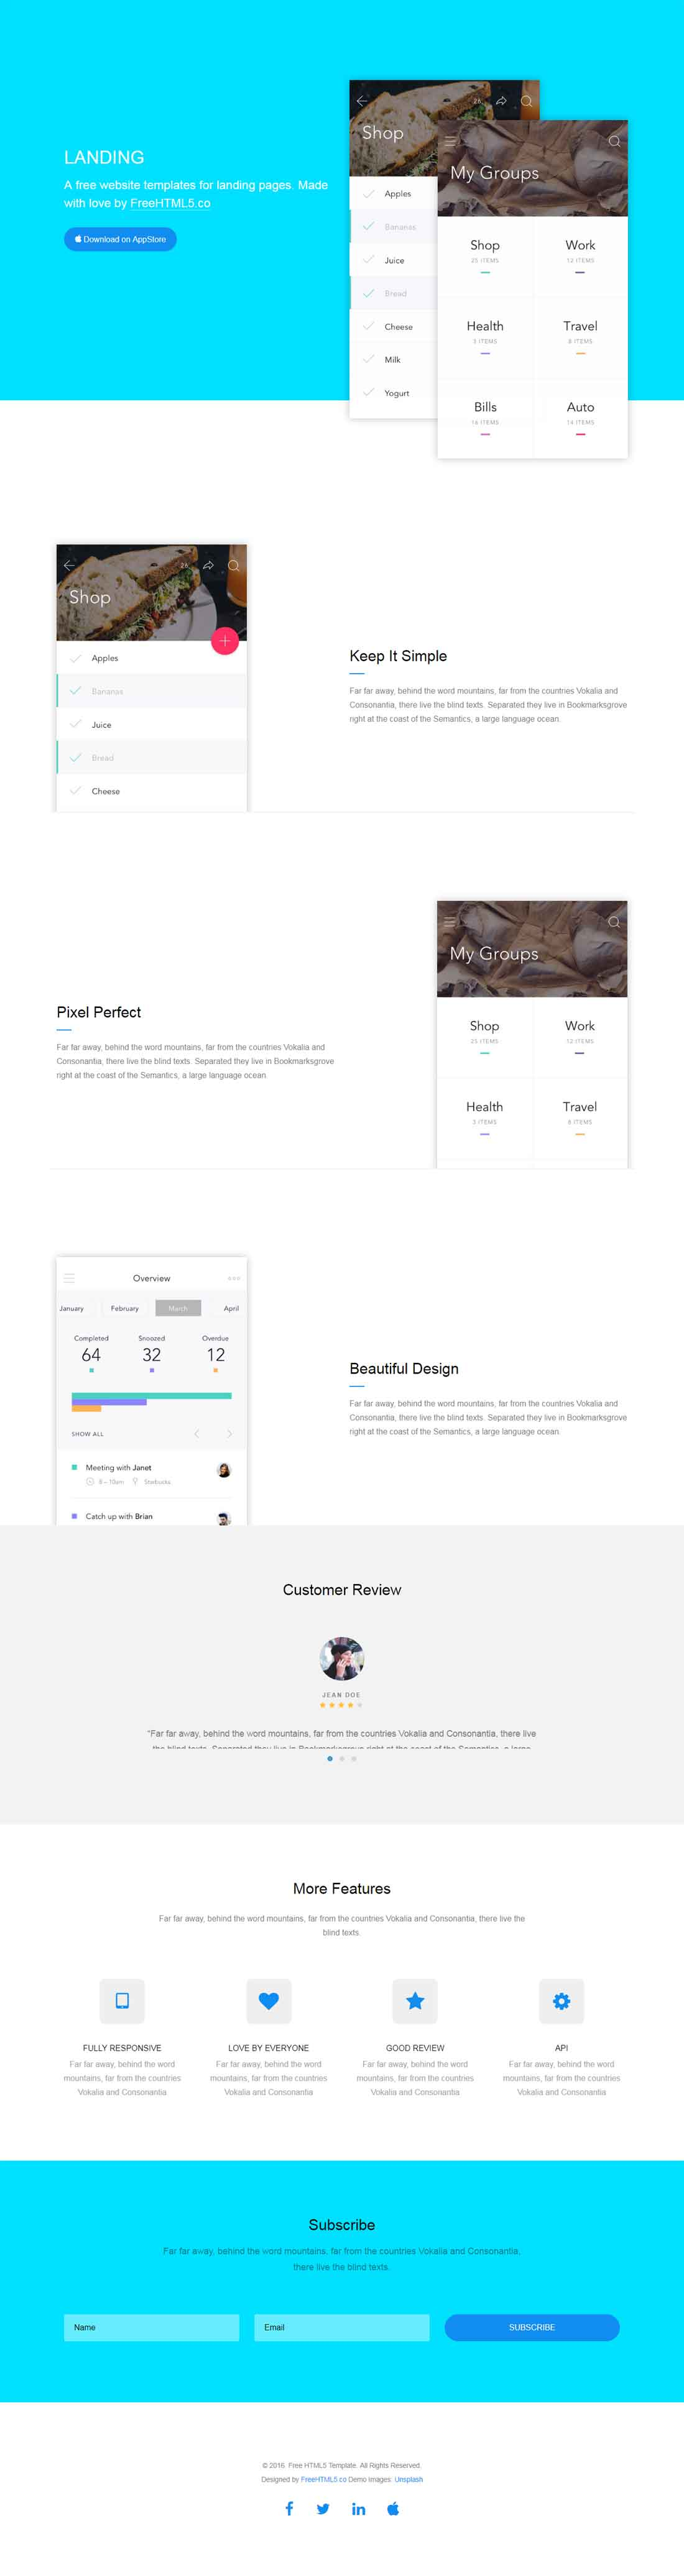 Landing Page : Free Website Template Using Bootstrap